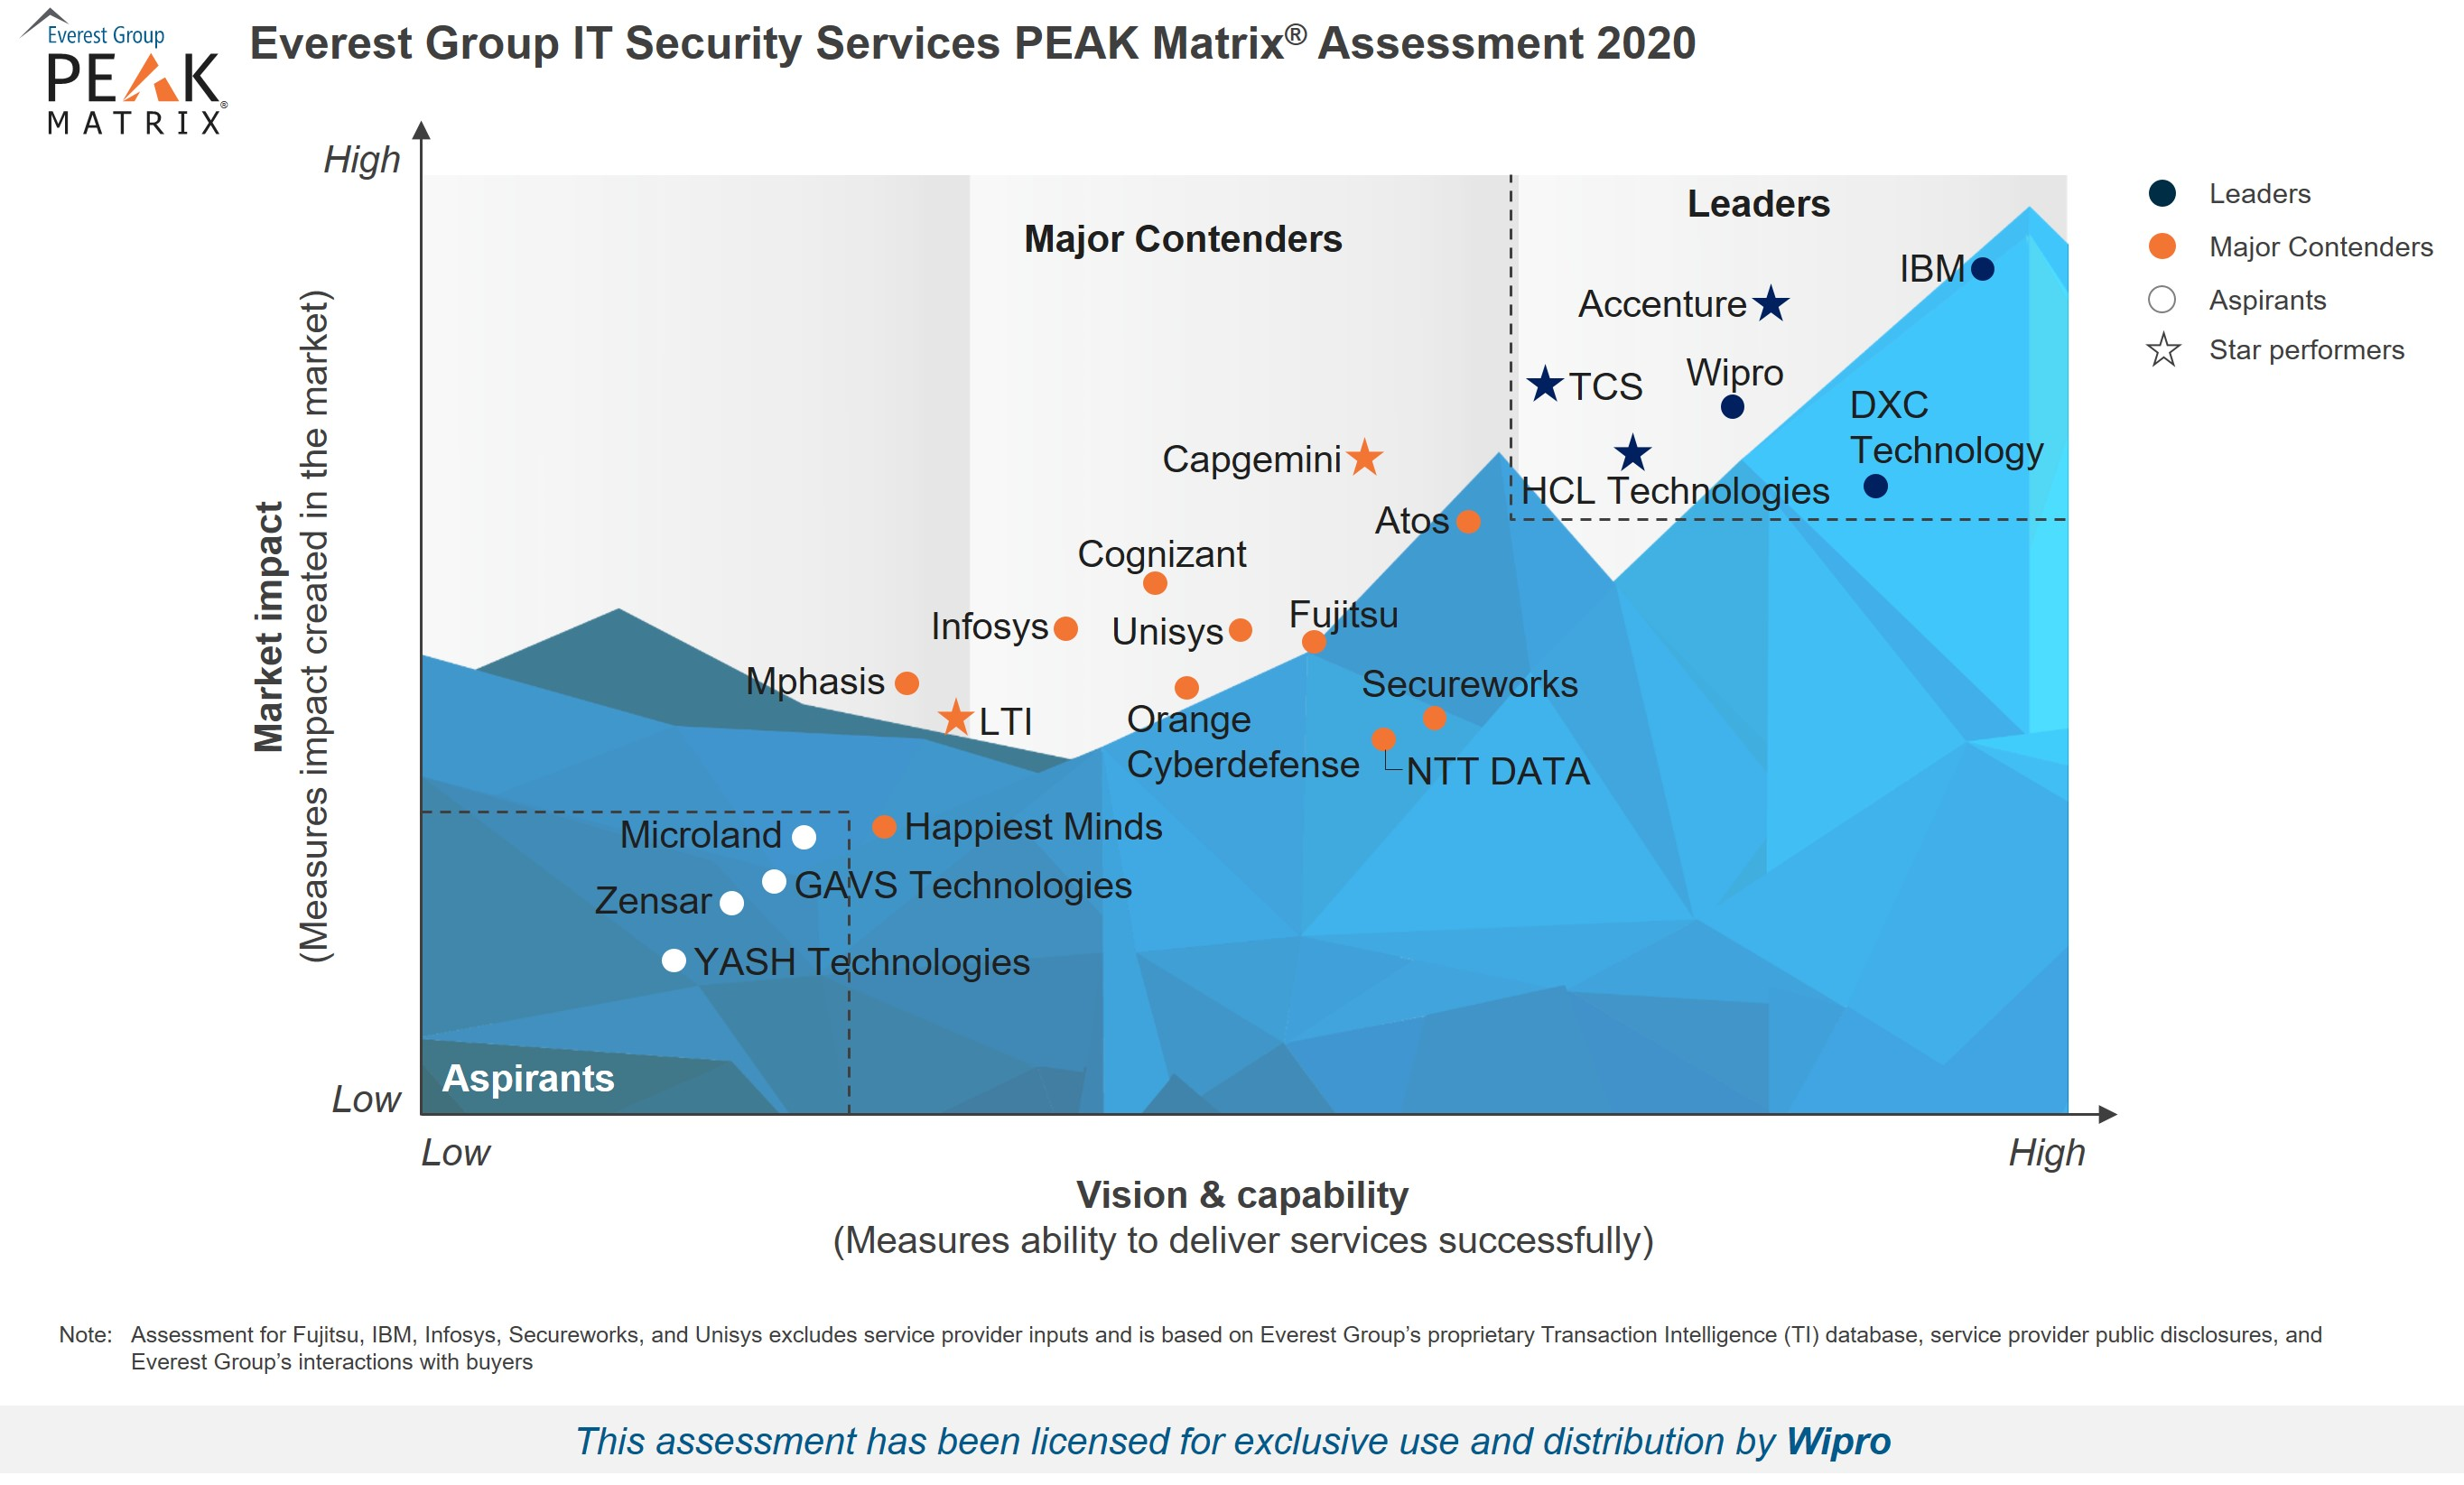 Wipro rated as a Leader in IT Security Services PEAK Matrix® Assessment 2020